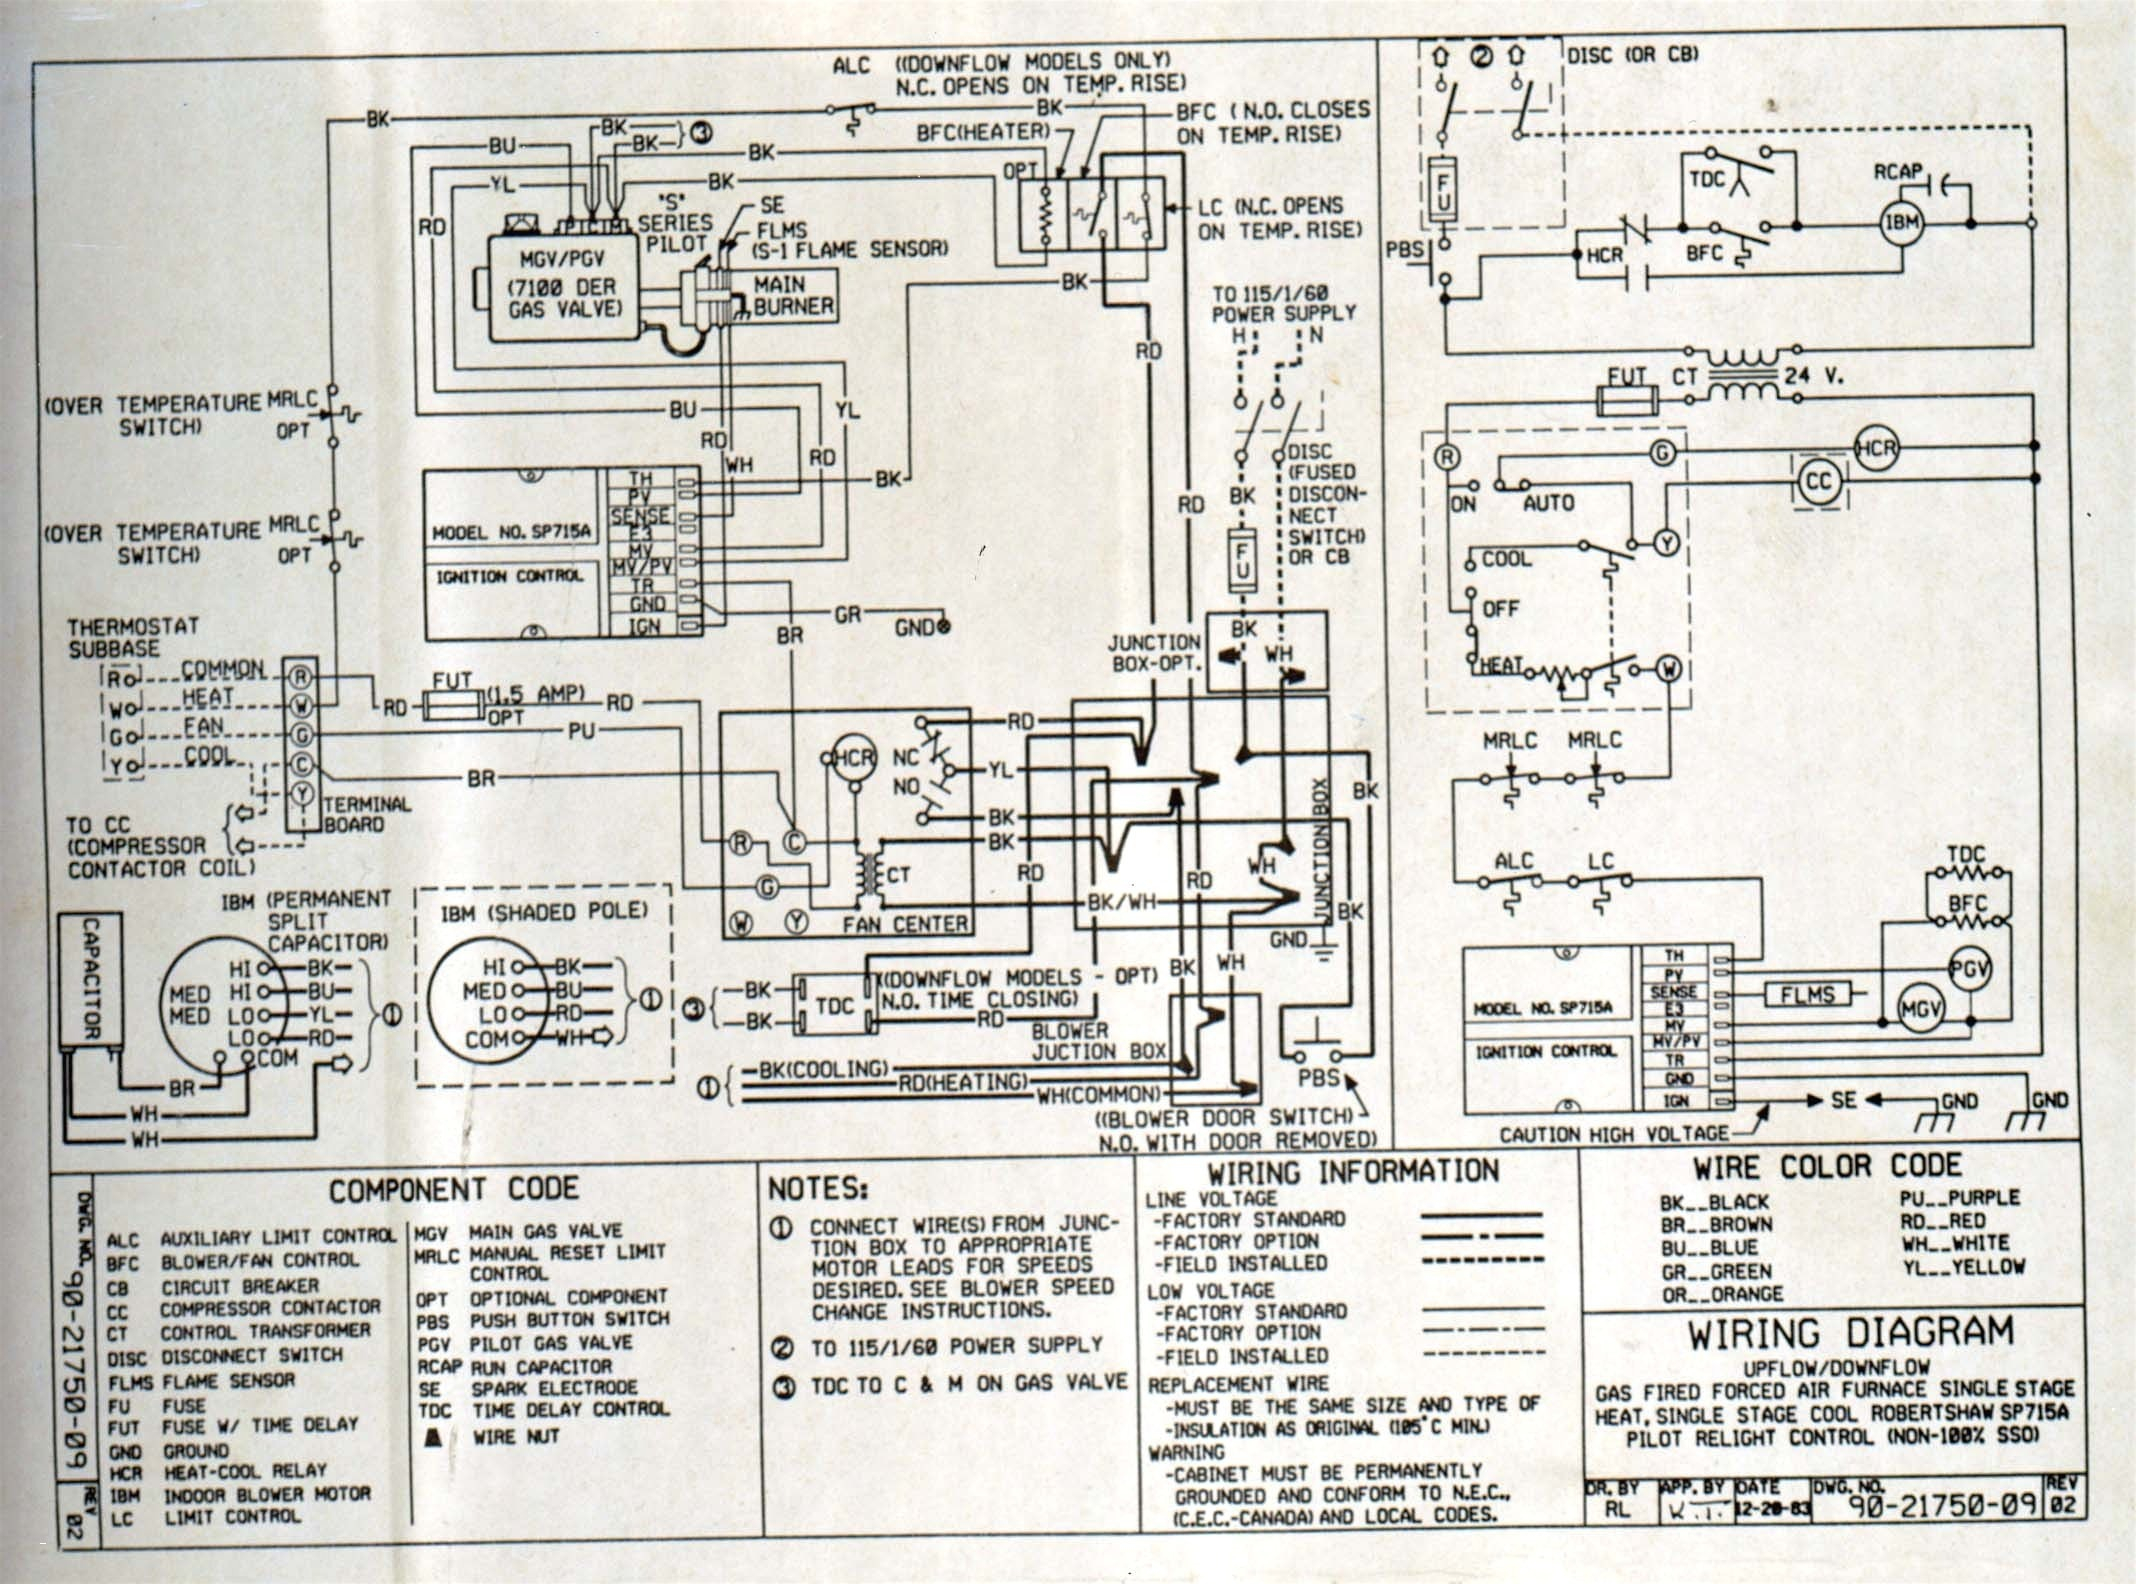 goodman heat pump wiring diagram download wiring diagram sample rh faceitsalon com goodman package heat pump wiring diagram goodman heat pump wire diagram